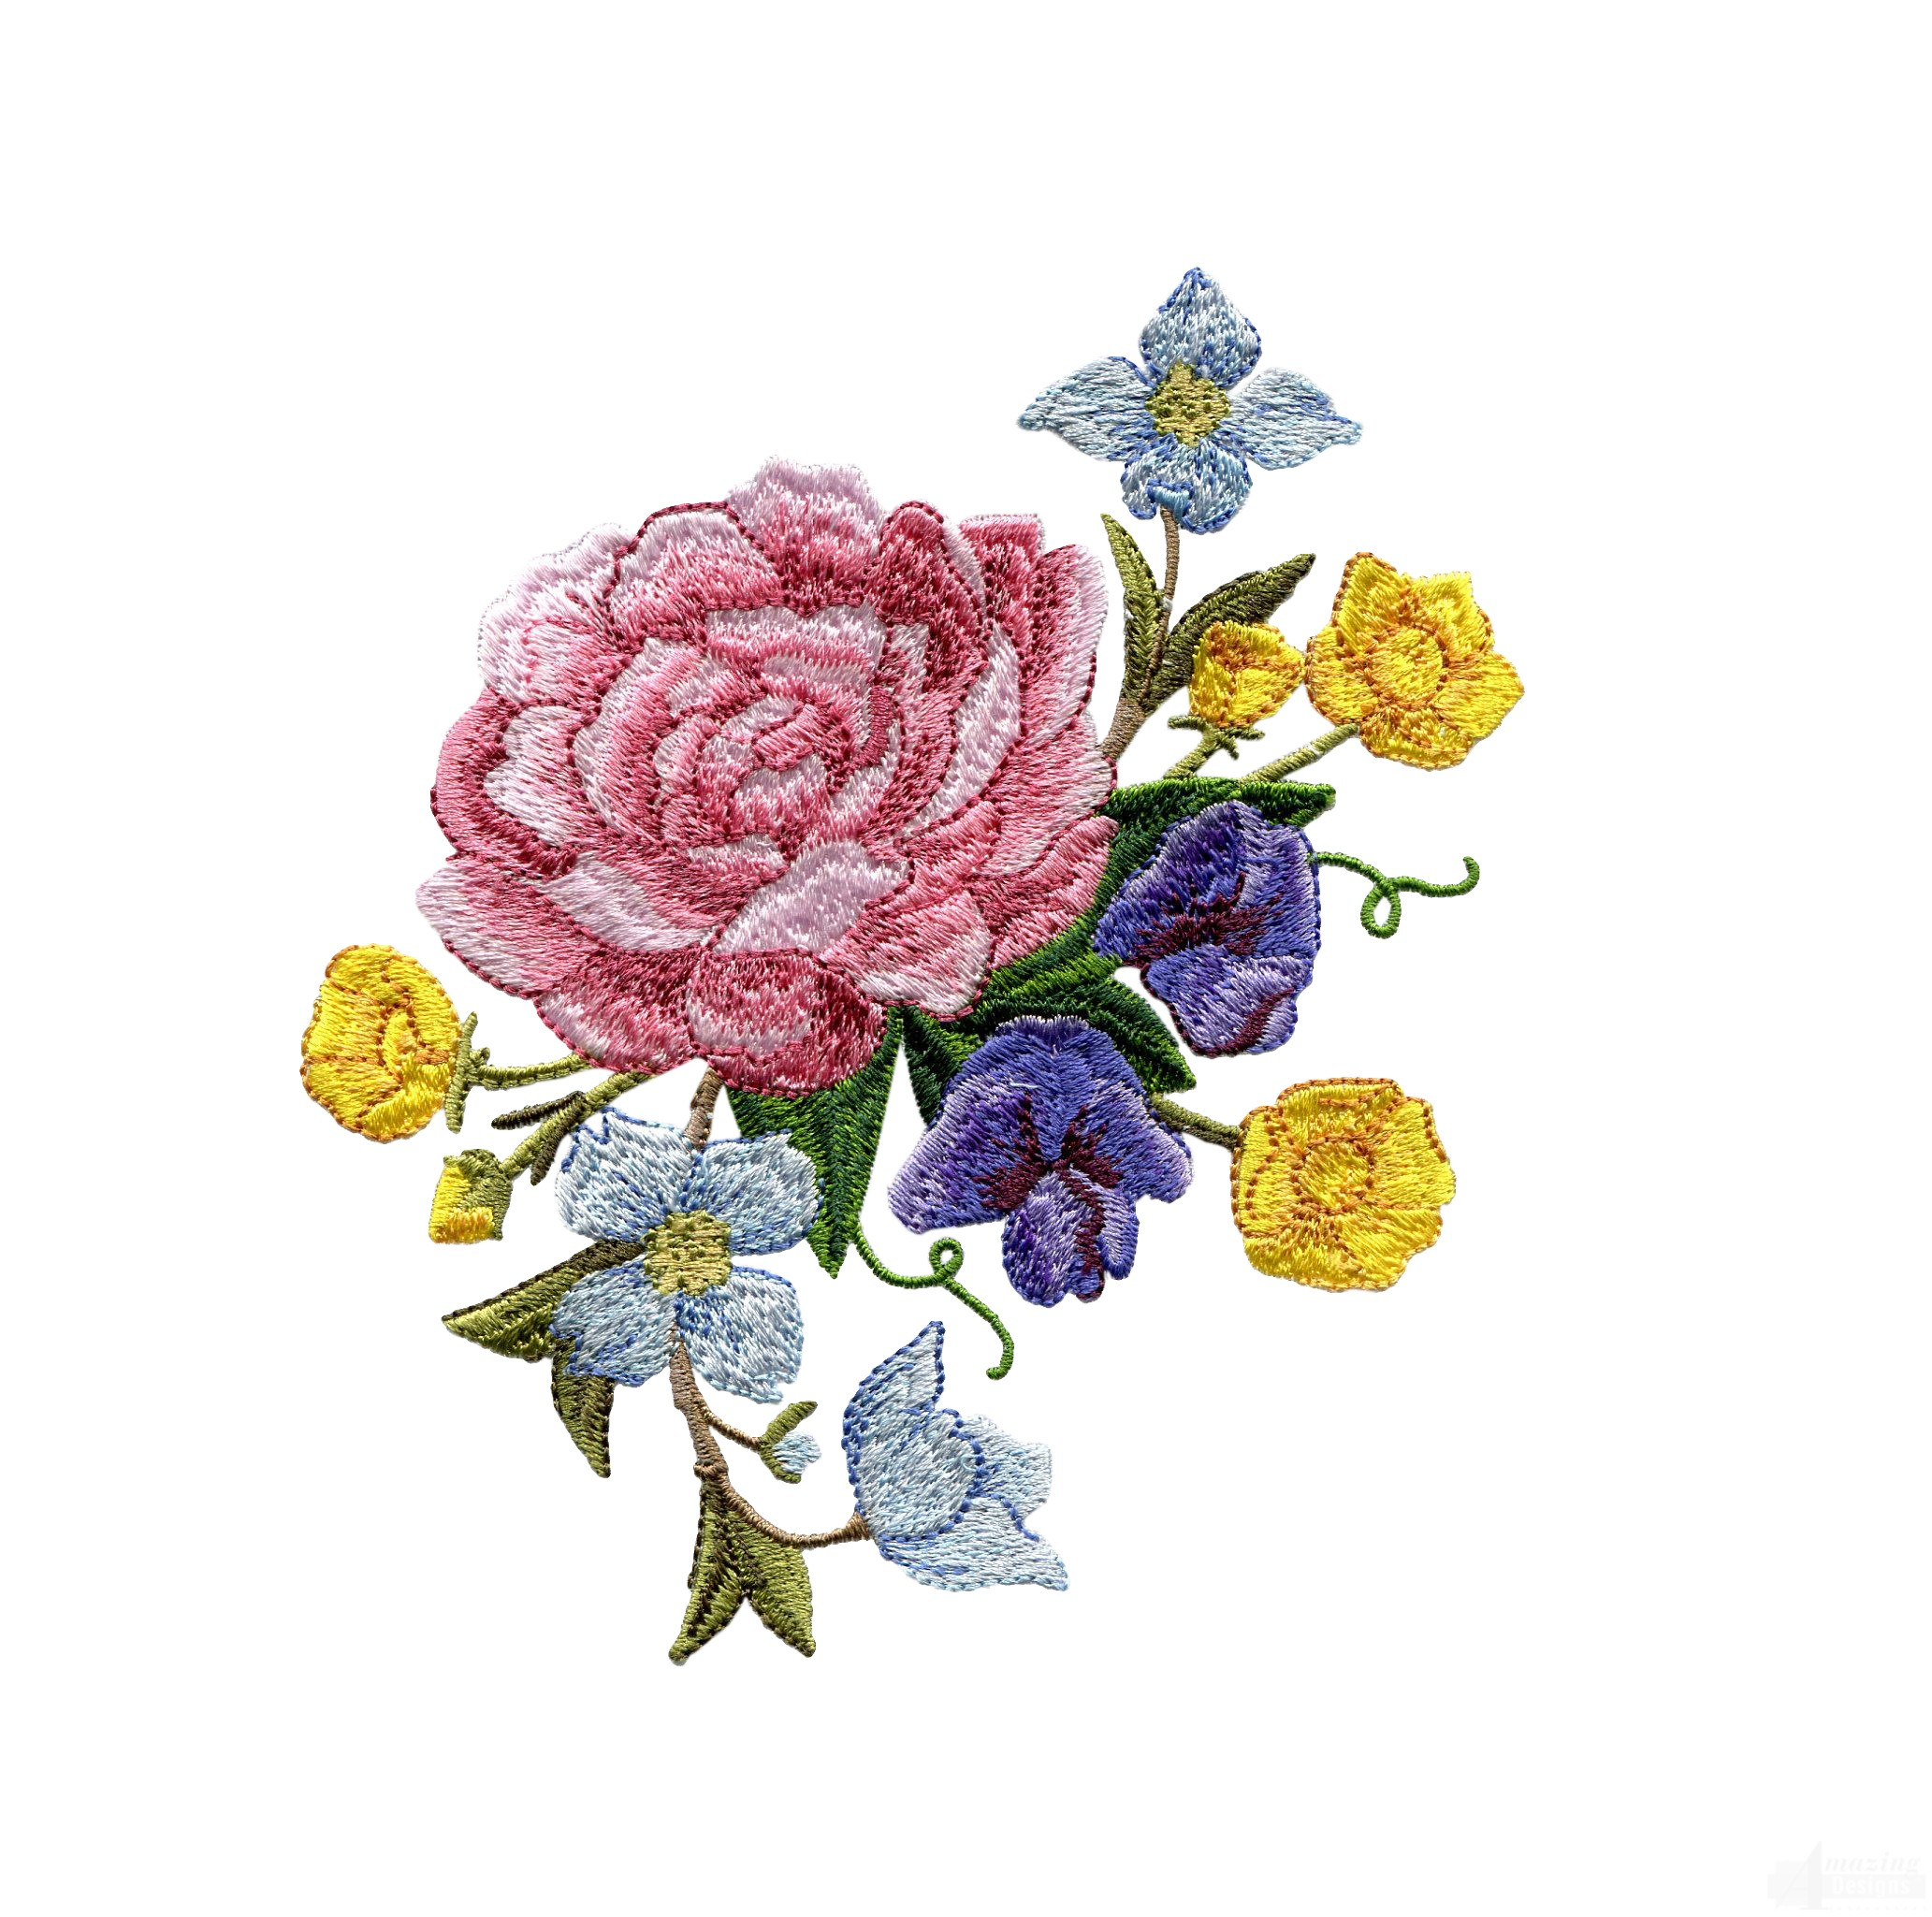 Swnsdf splendid days floral embroidery design